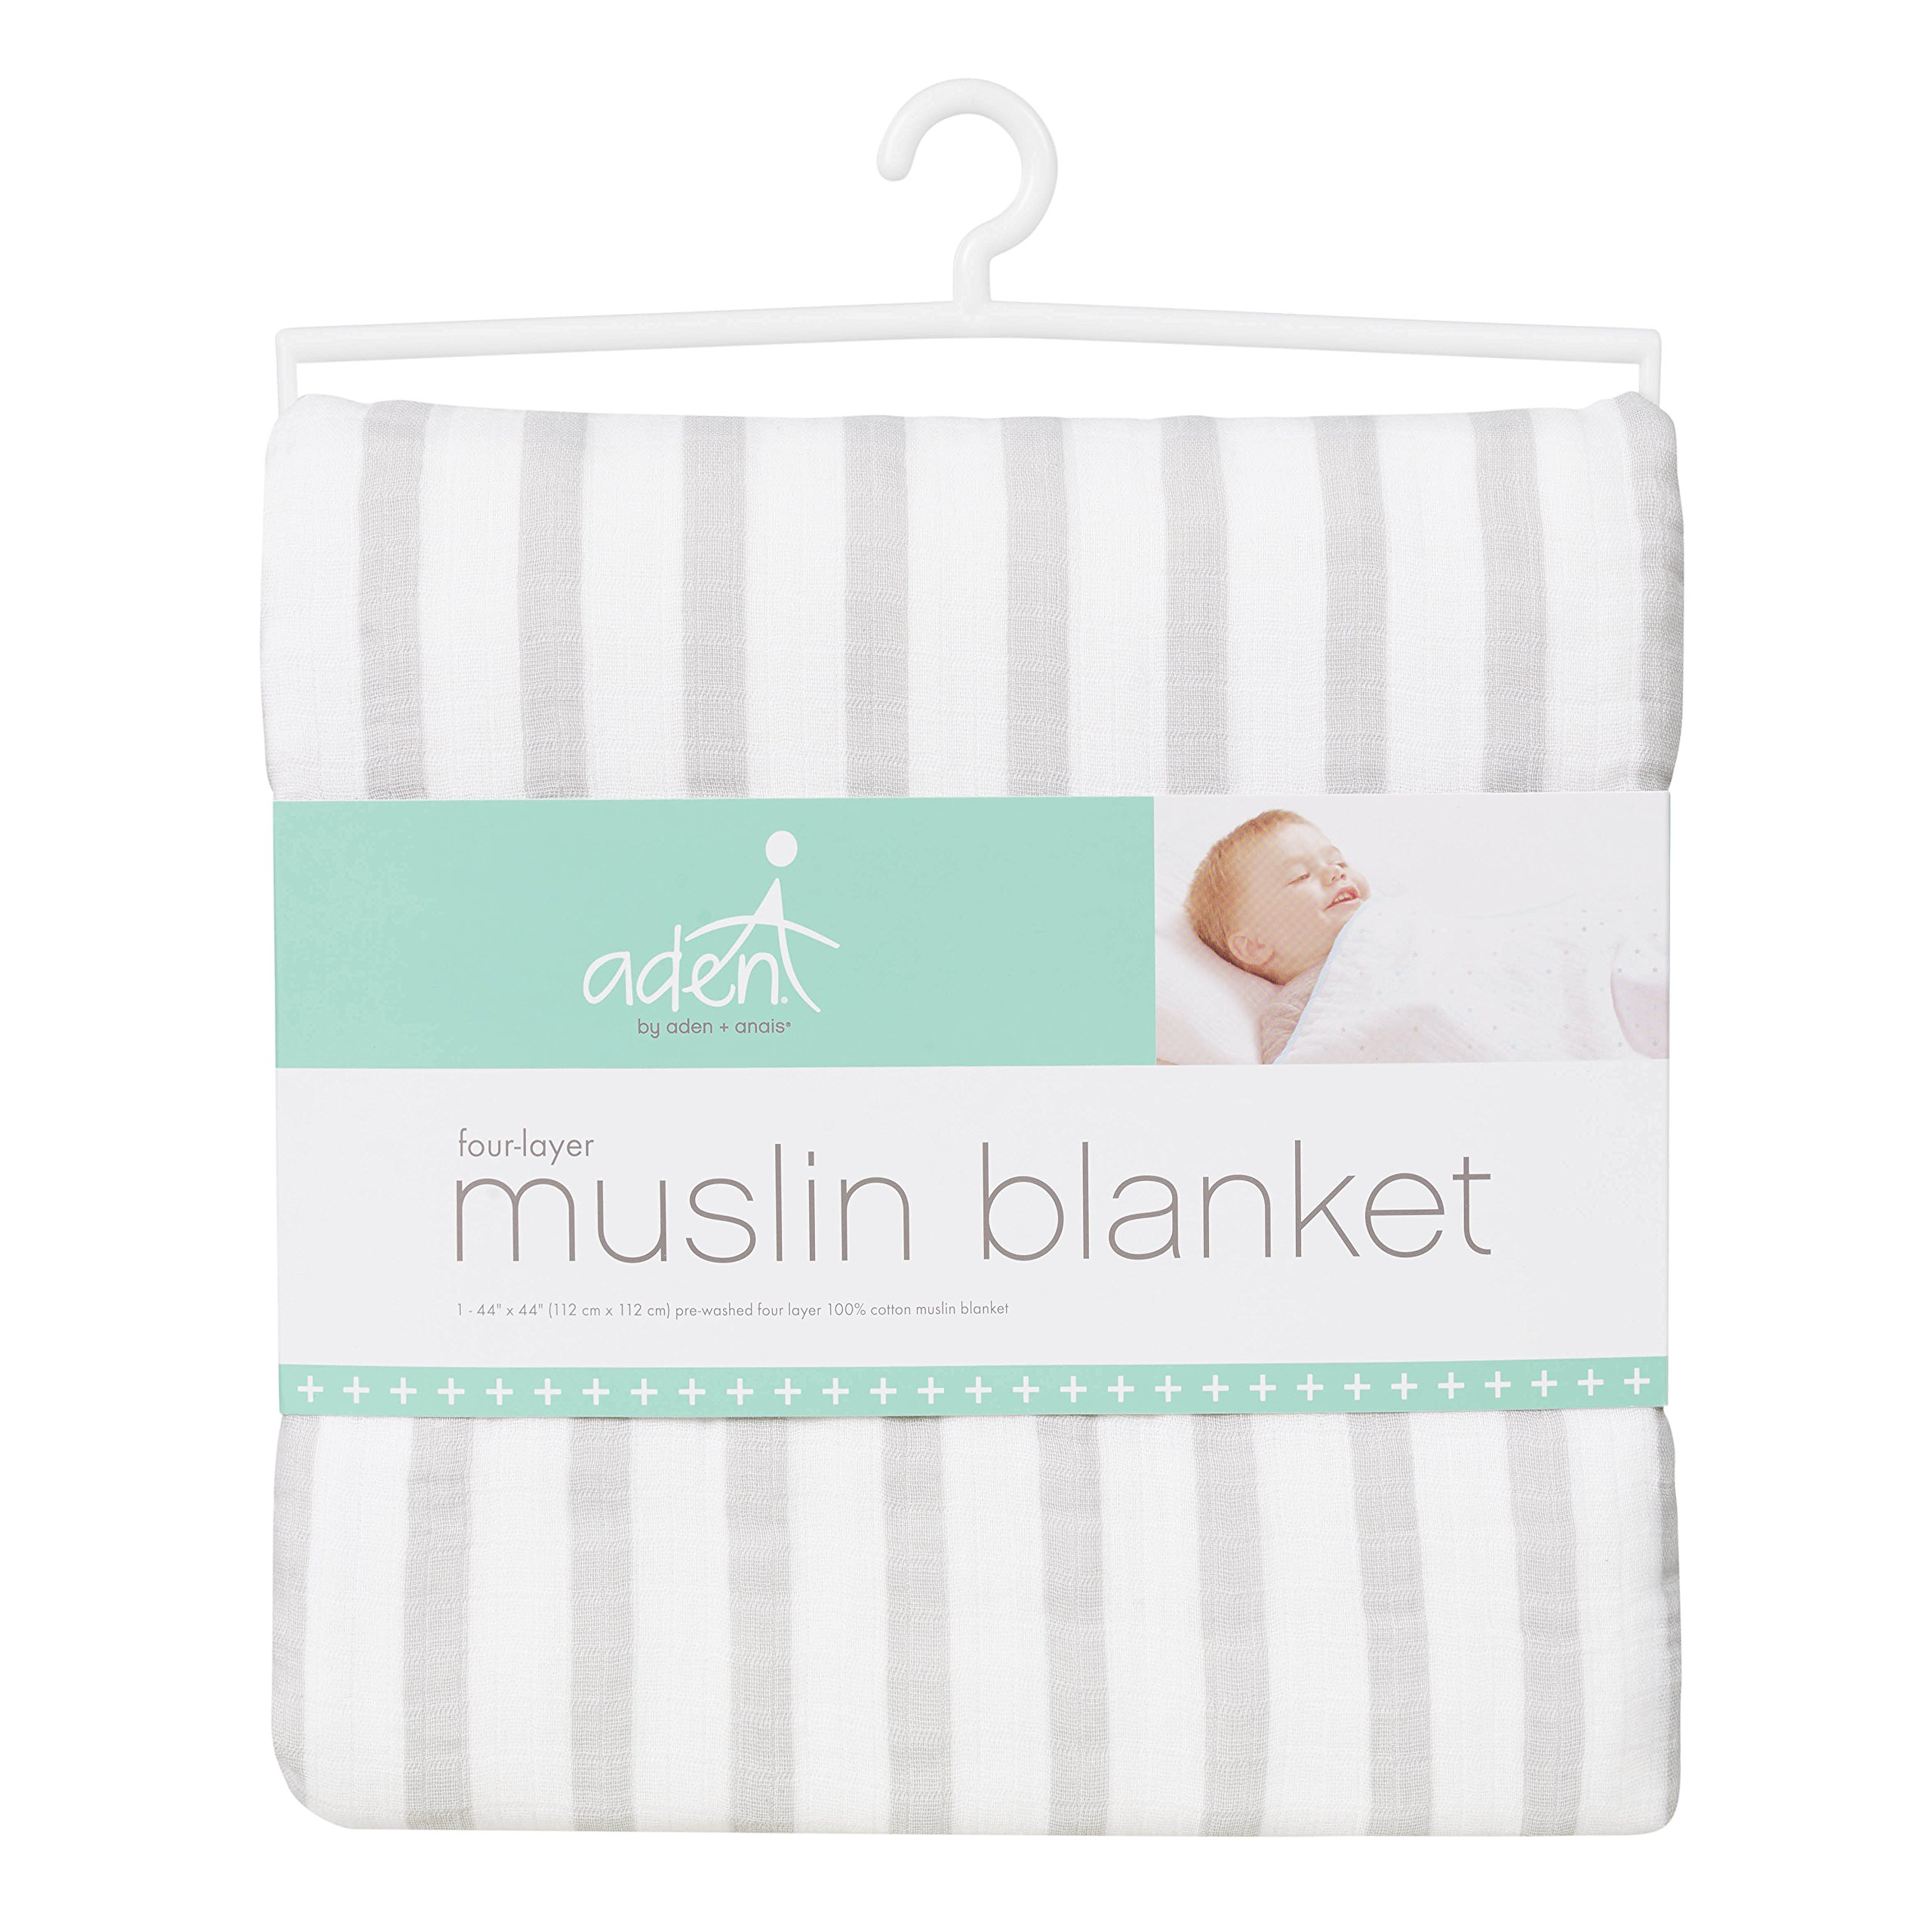 Aden by Aden + Anais Dream Blanket, 100% Cotton Muslin, 4 Layer Lightweight and Breathable, Large 44 X 44 inch, Micro Chip Stripe